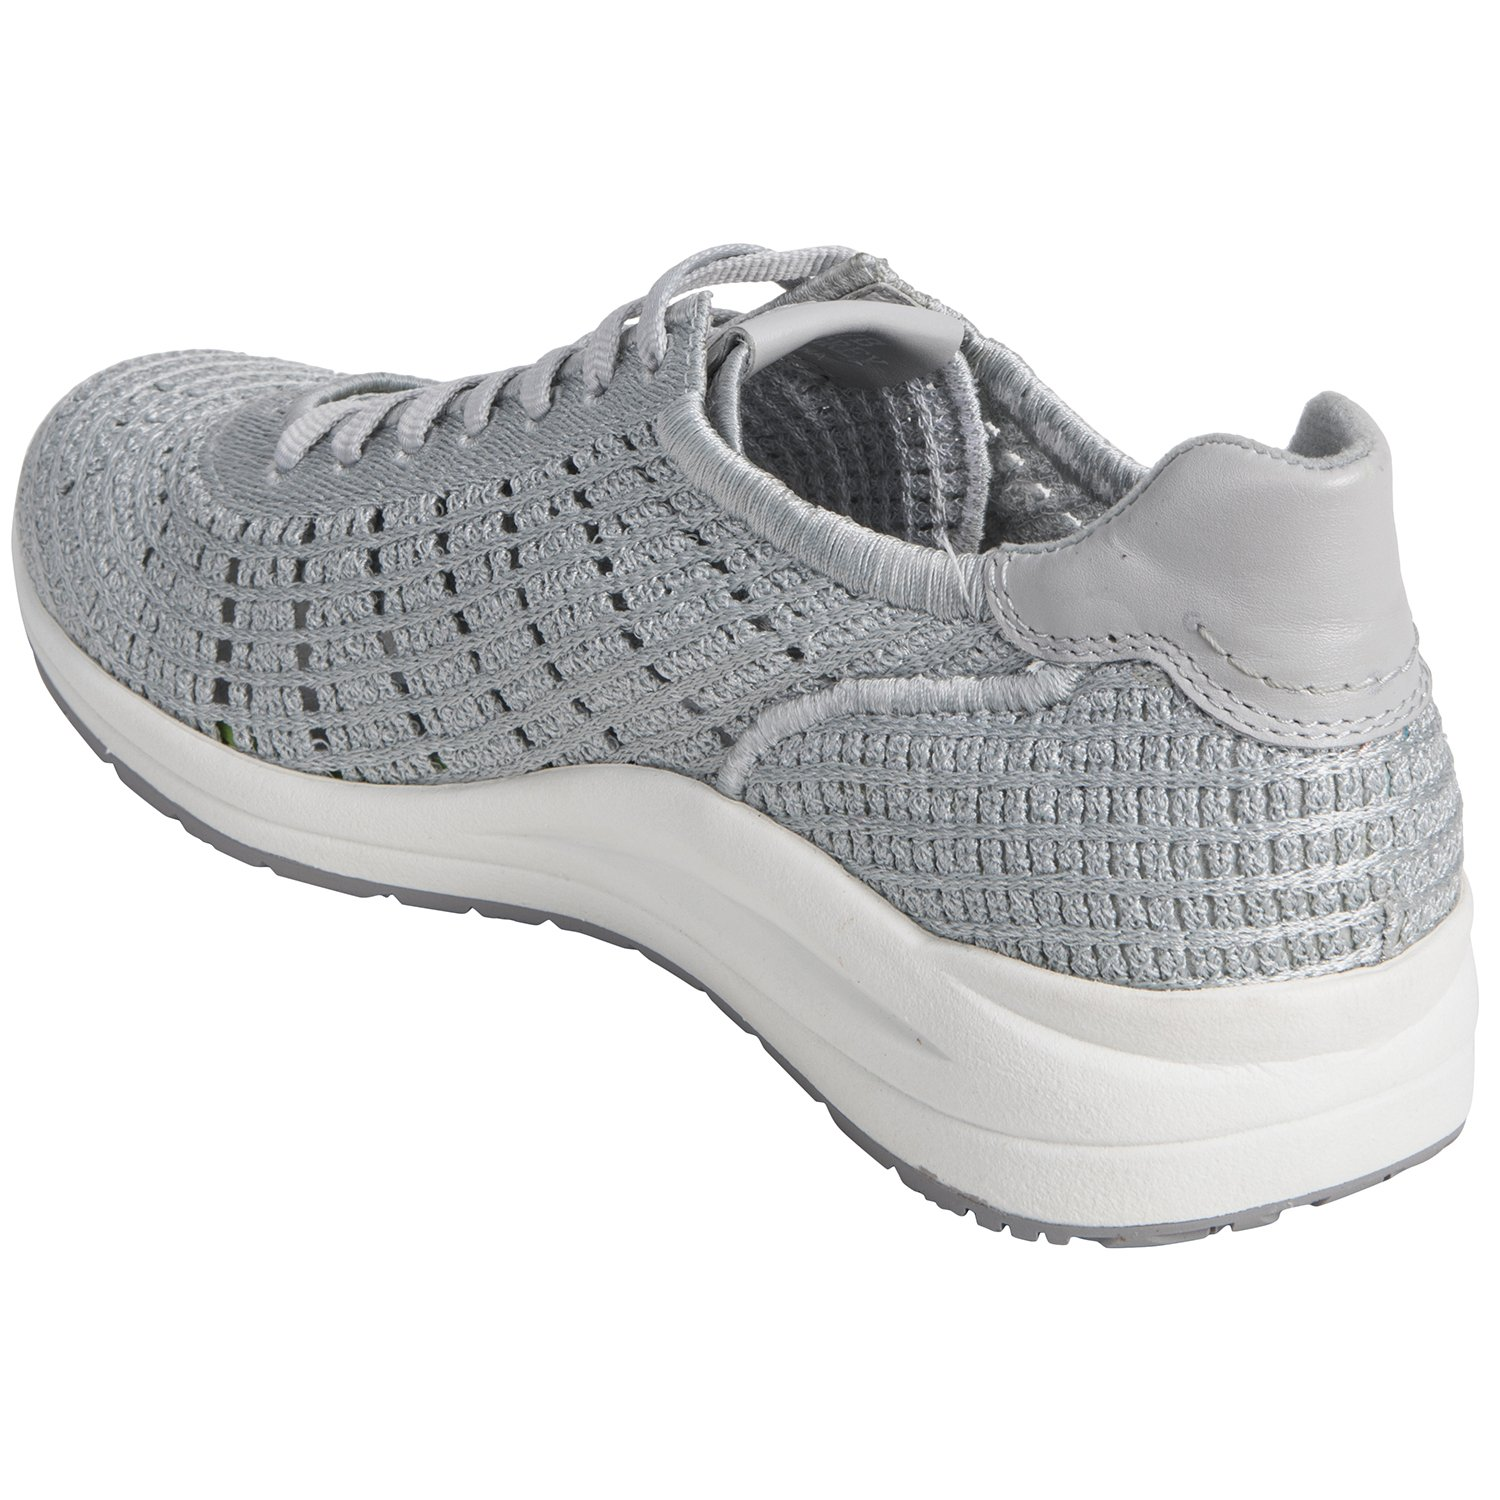 Earth Shoes Vital B078TPSPC8 6.5 B(M) US|Light Grey